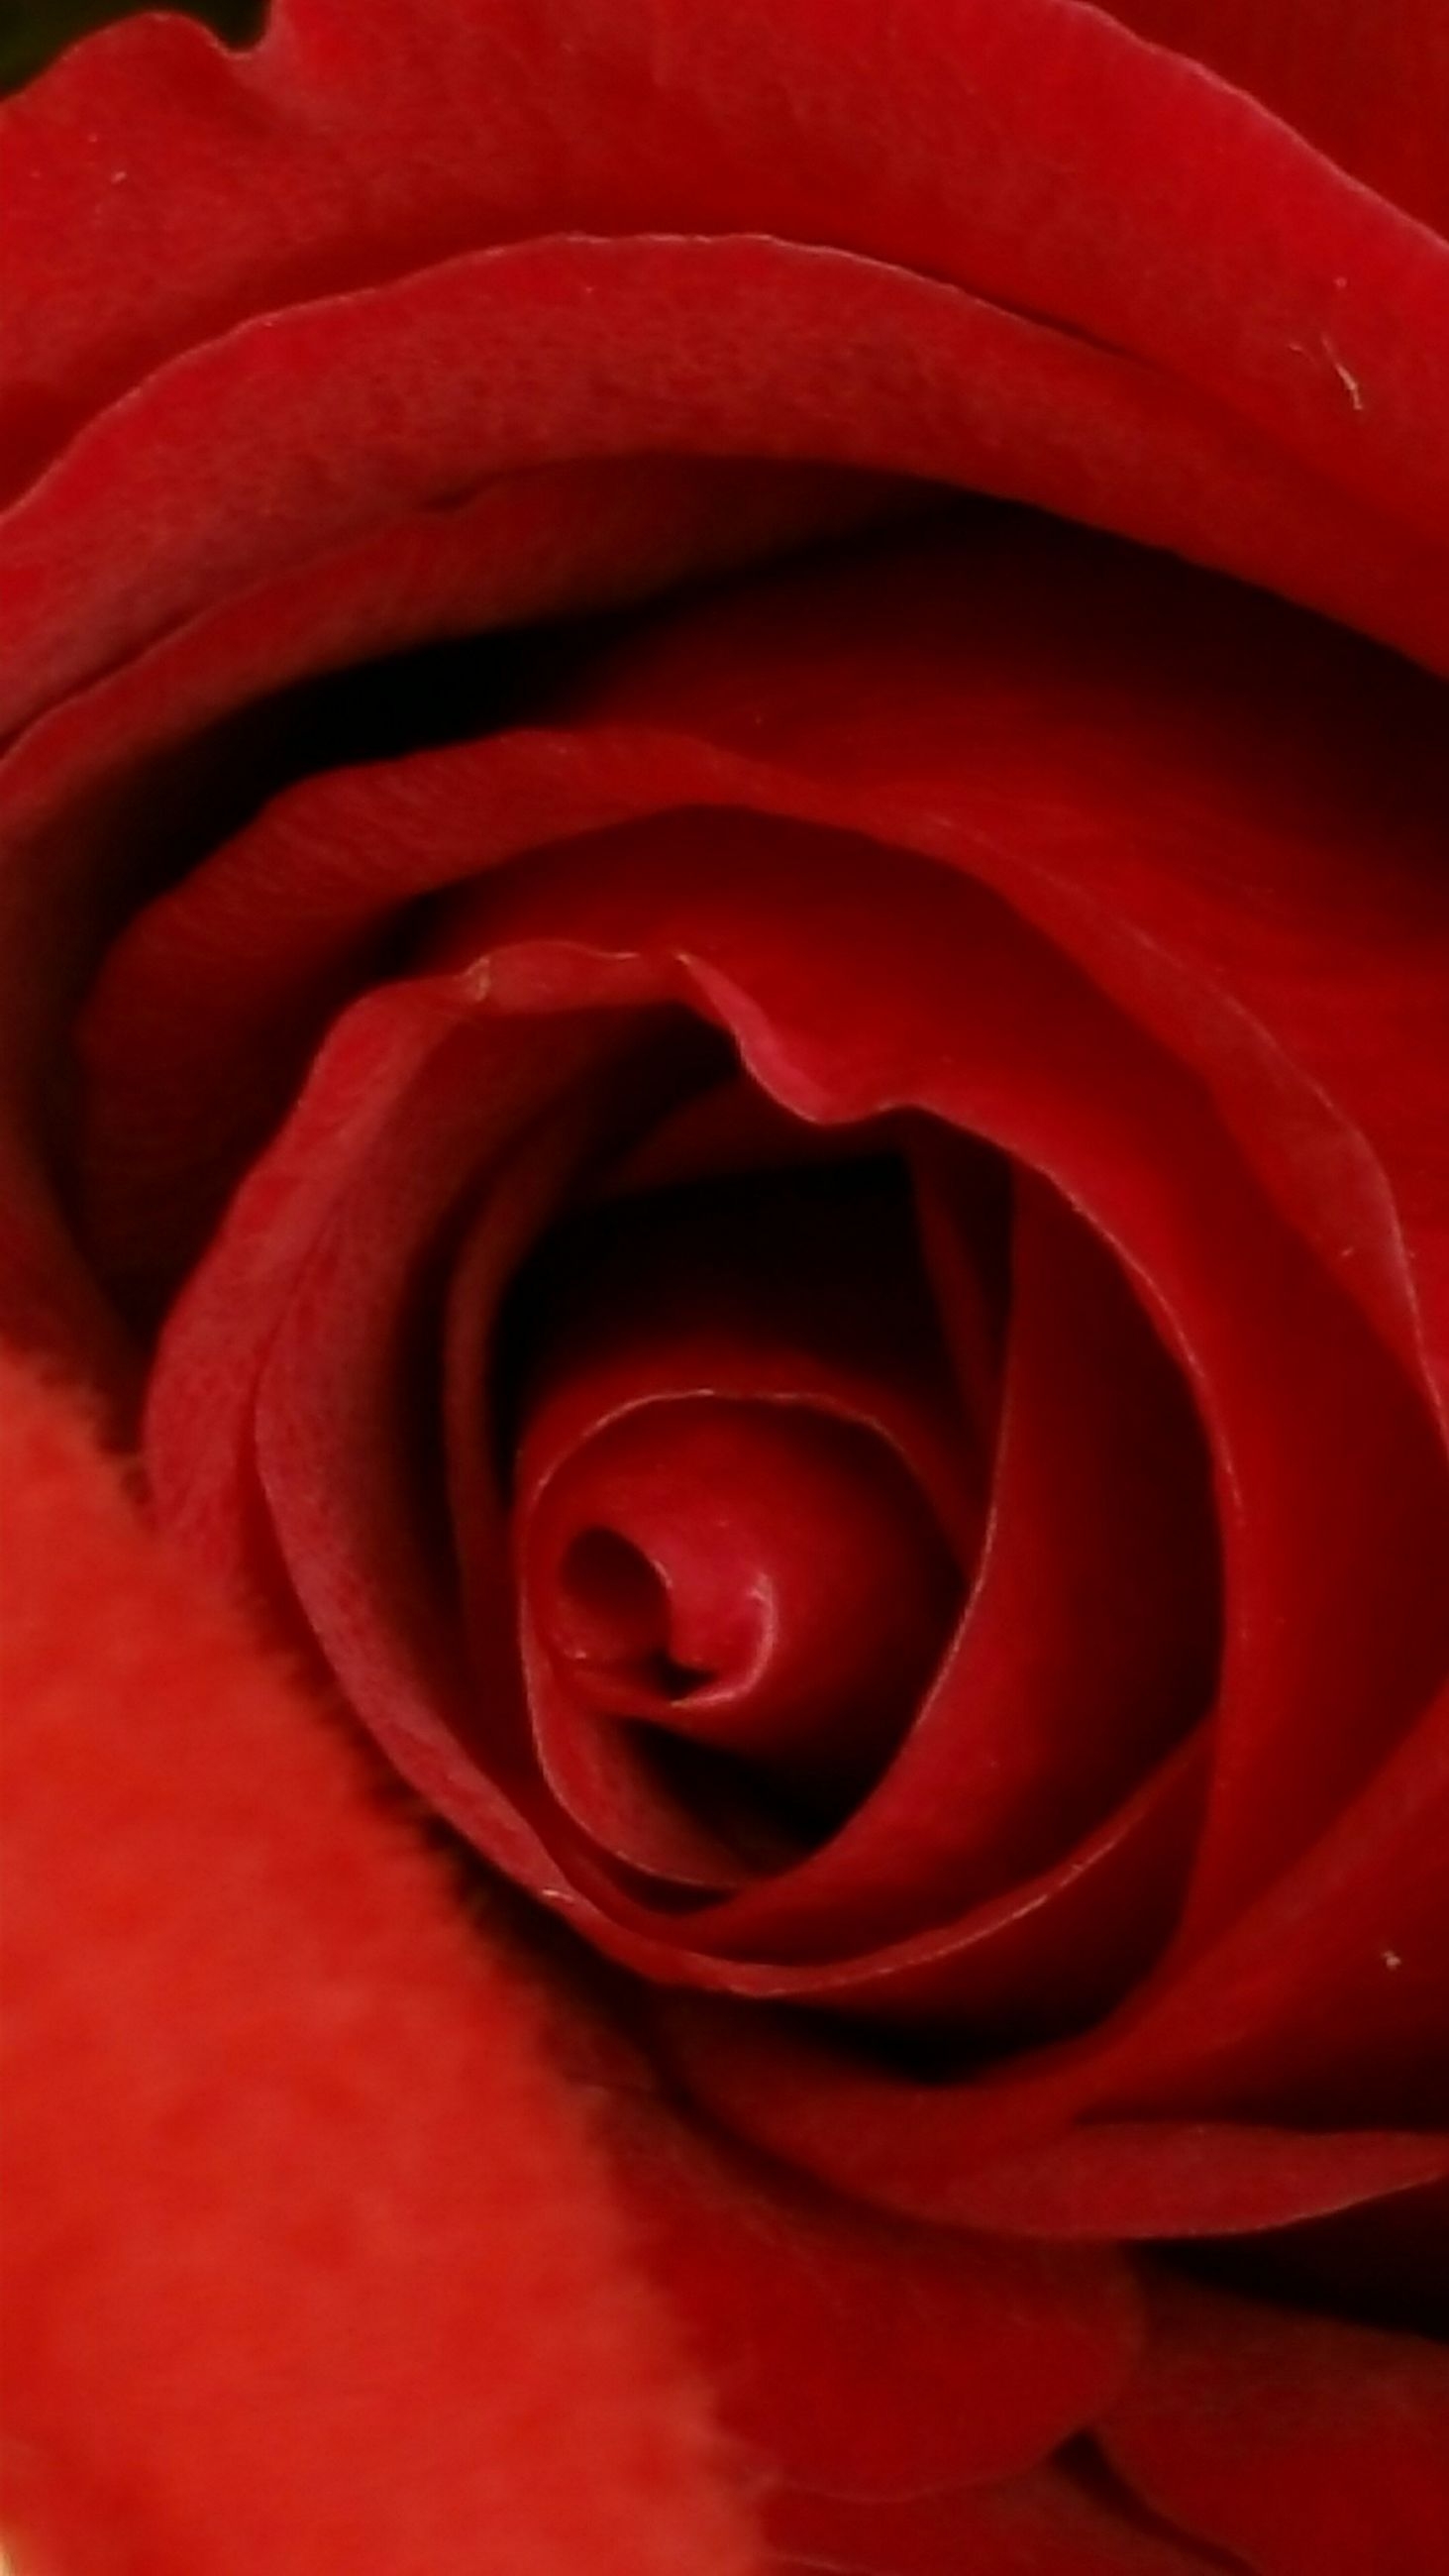 red, flower, petal, flower head, freshness, rose - flower, fragility, beauty in nature, single flower, close-up, full frame, backgrounds, rose, growth, nature, natural pattern, macro, extreme close-up, single rose, no people